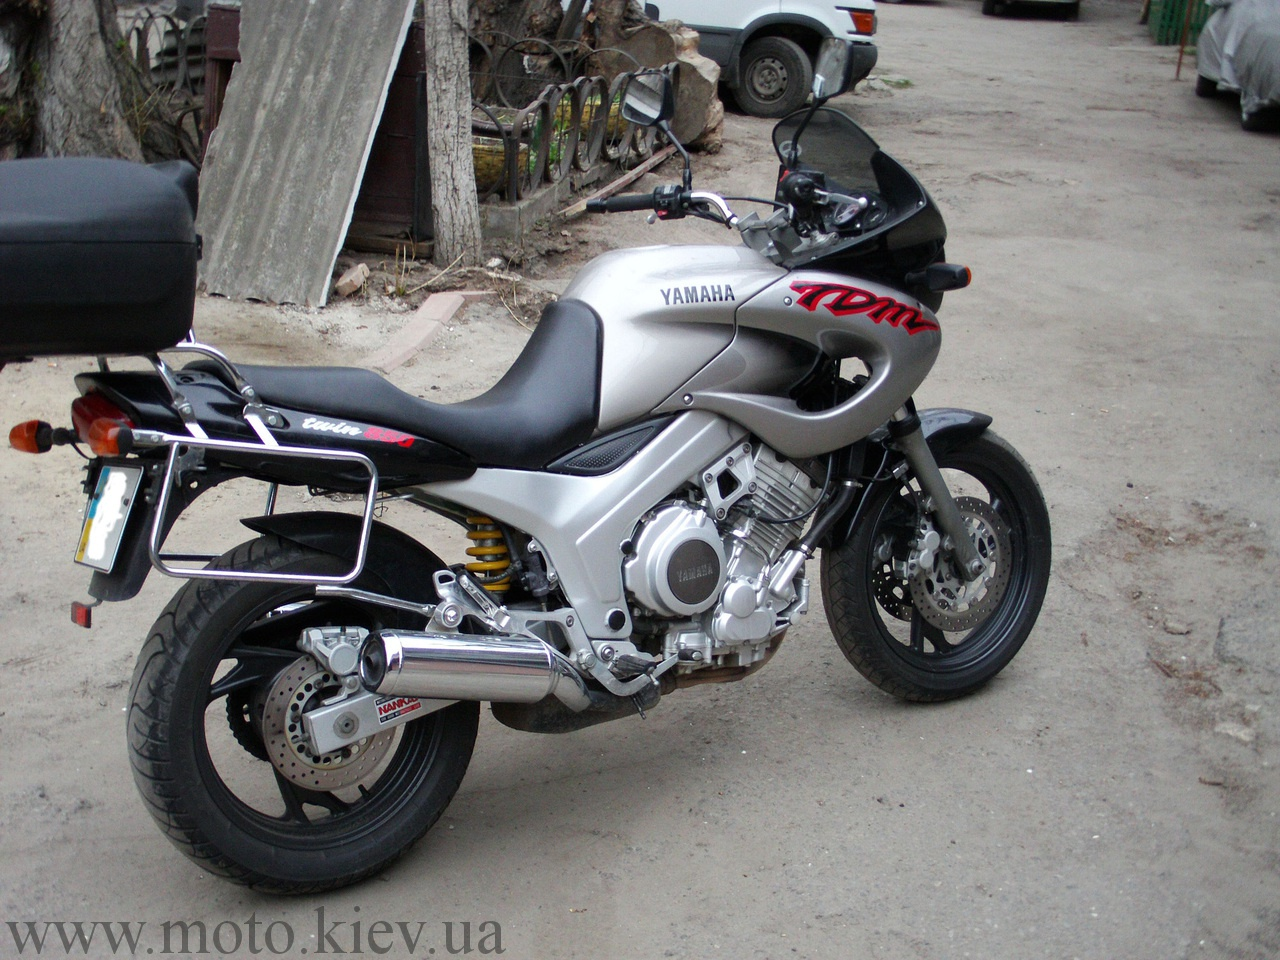 1998 yamaha tdm 850 pics specs and information. Black Bedroom Furniture Sets. Home Design Ideas